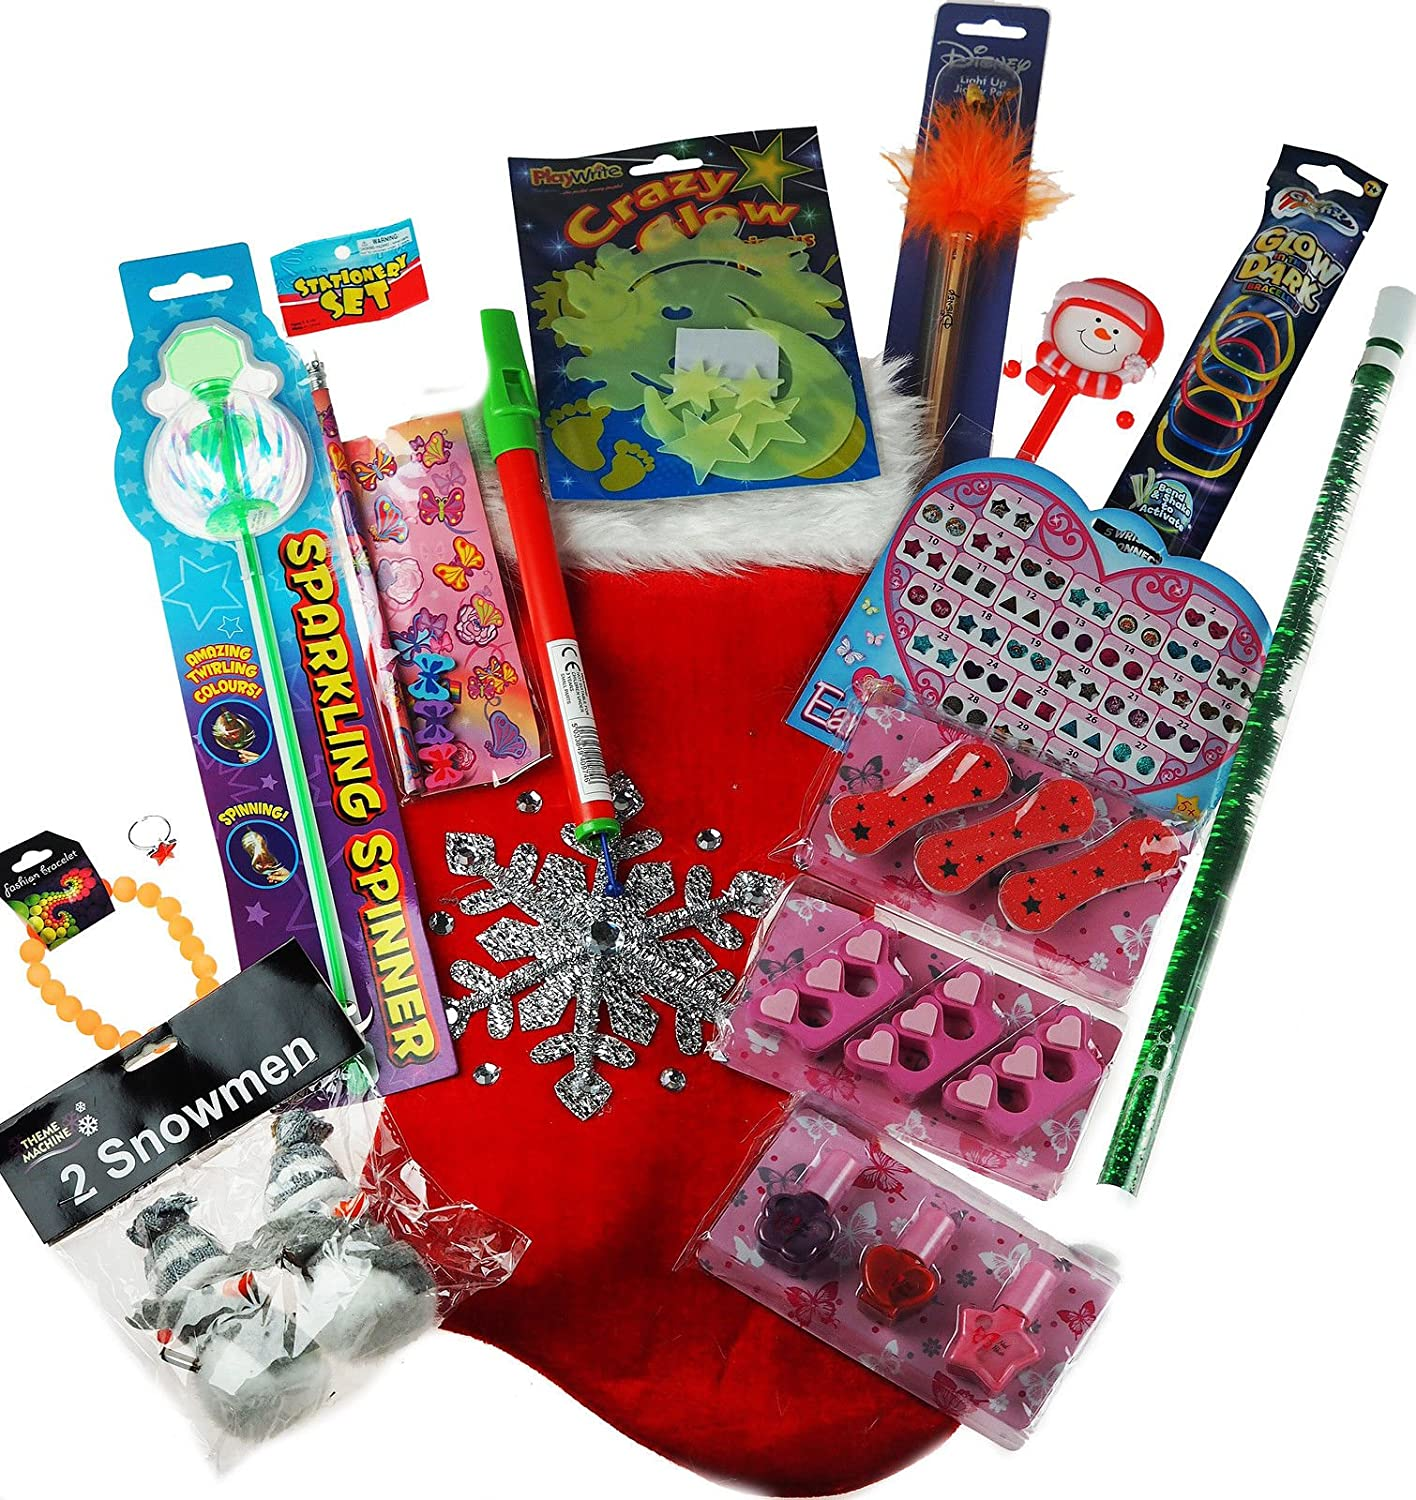 Girls Pre Filled Christmas Stocking Stuffed With 15 Glam Beauty Toys And Treats! Blue Whale Gifts Limited